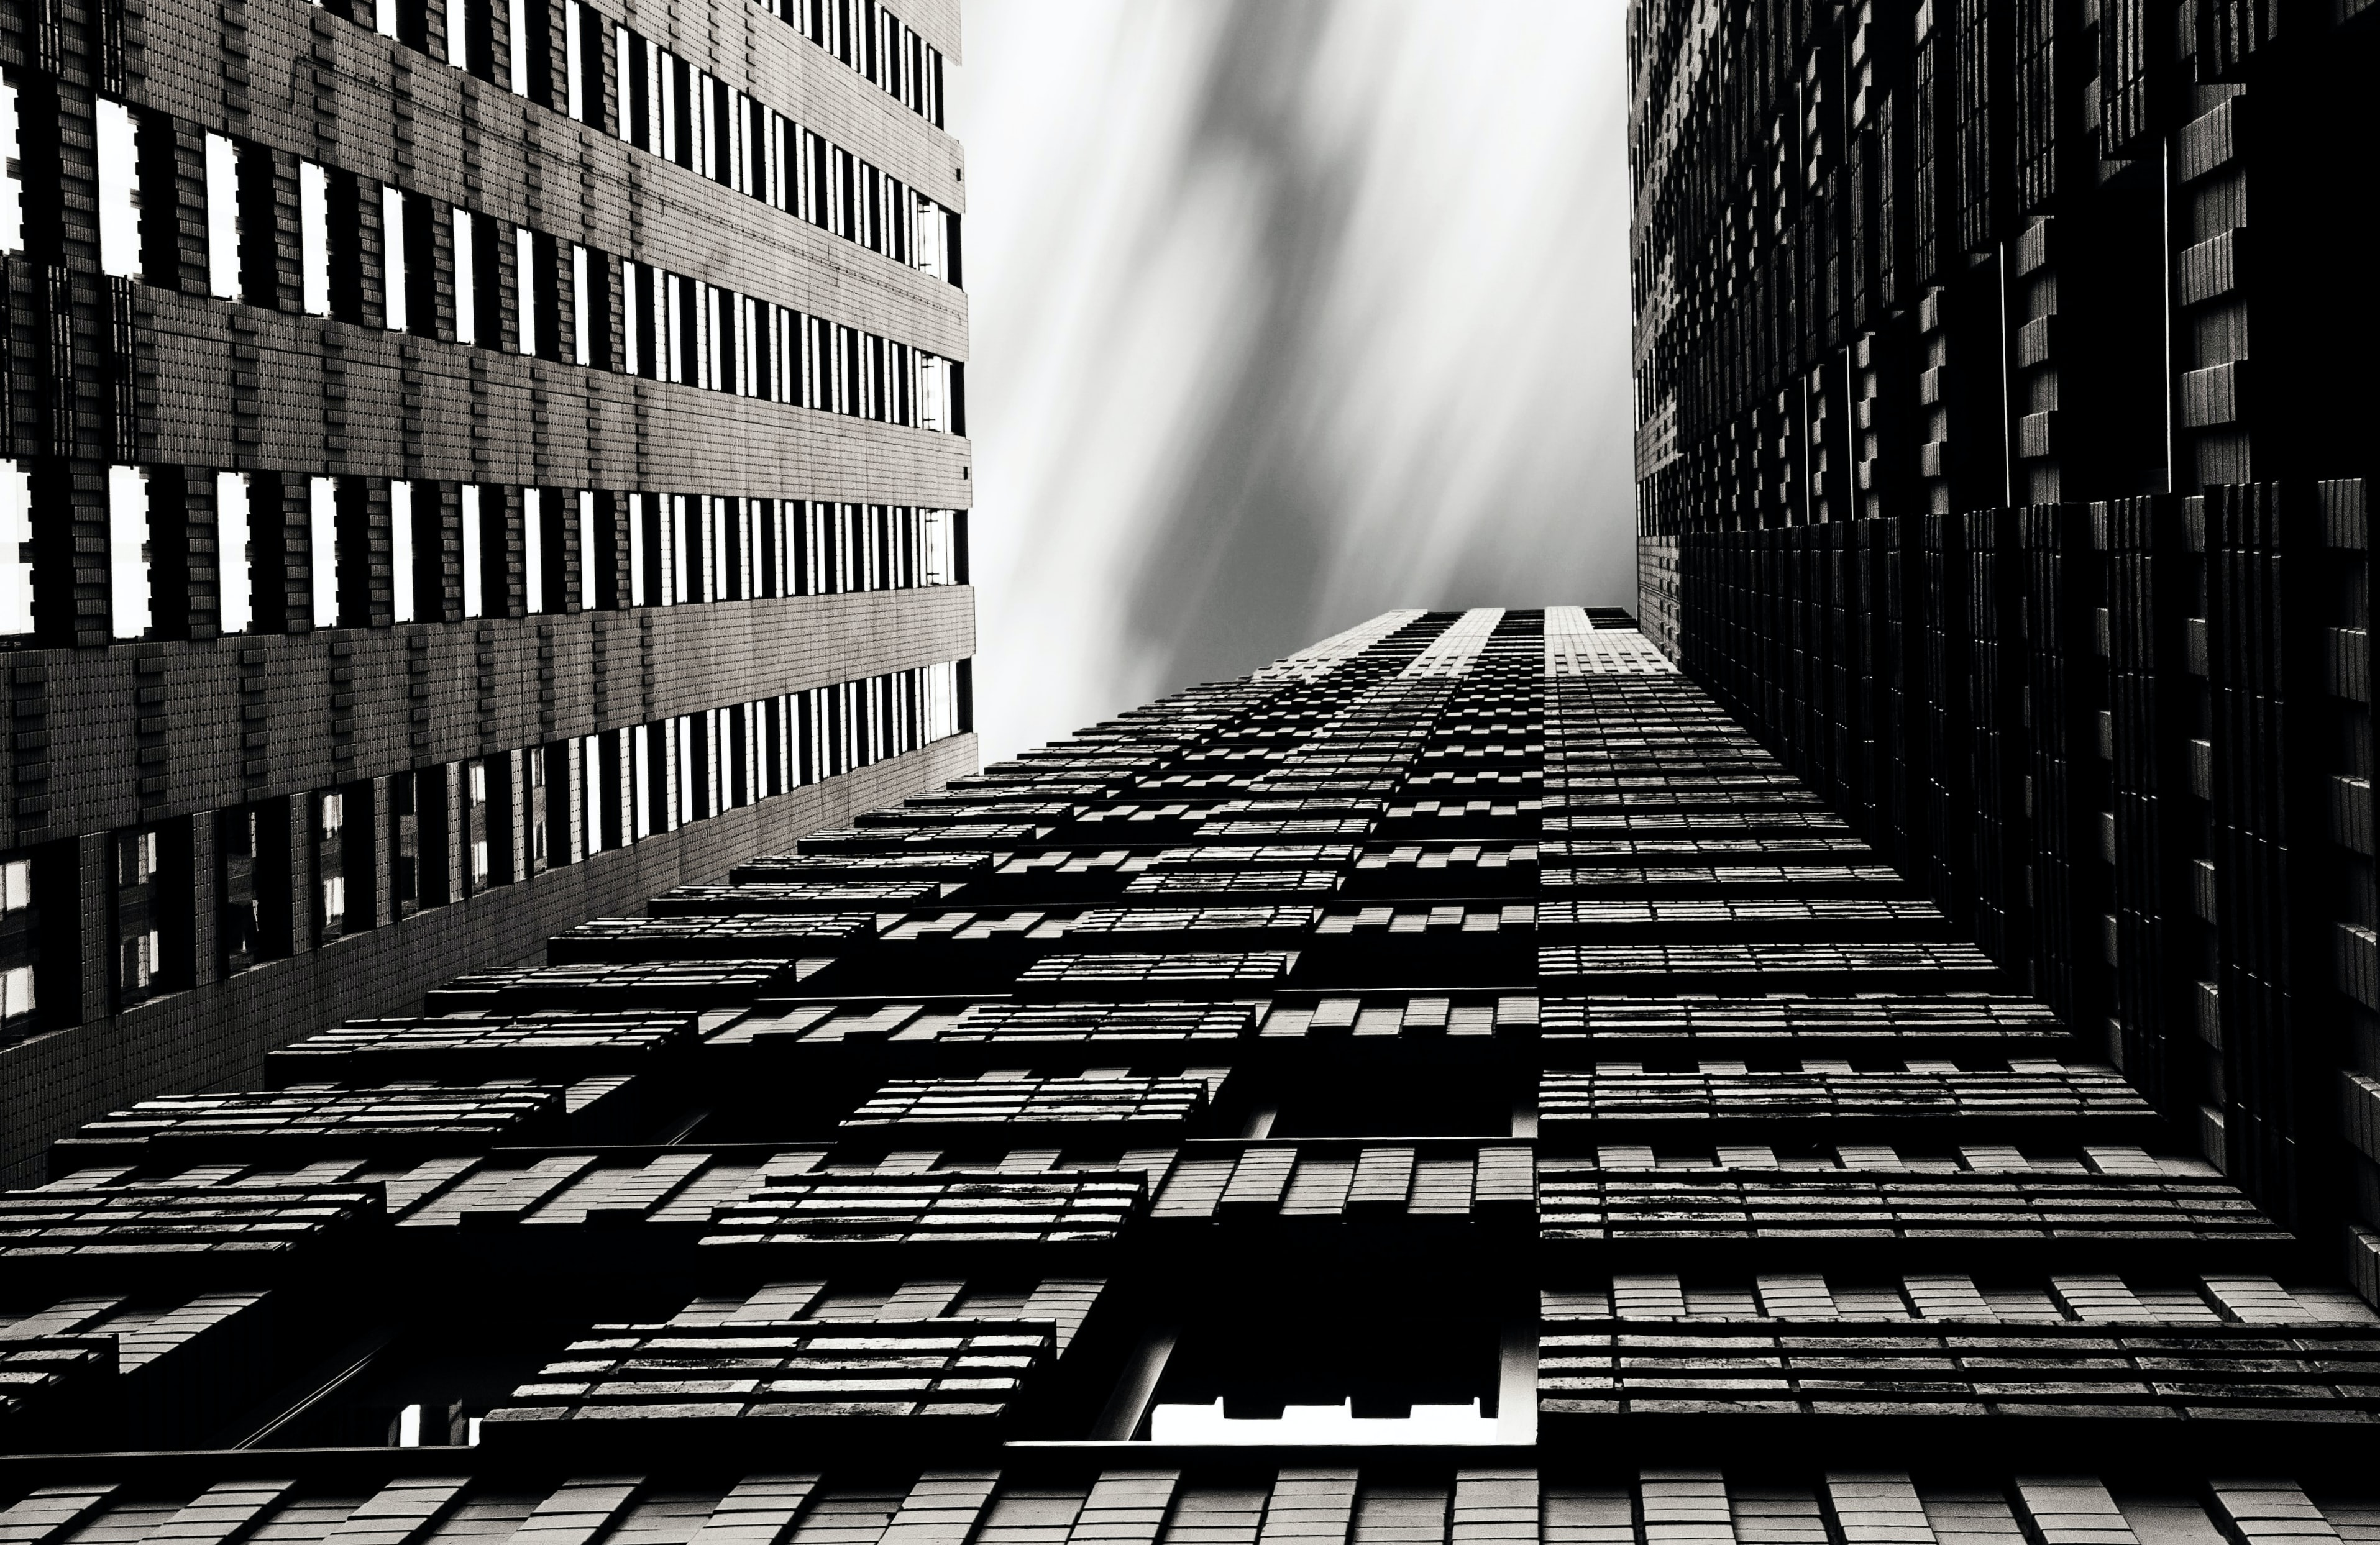 A black-and-white shot of skyscrapers with geometric patterns facade.